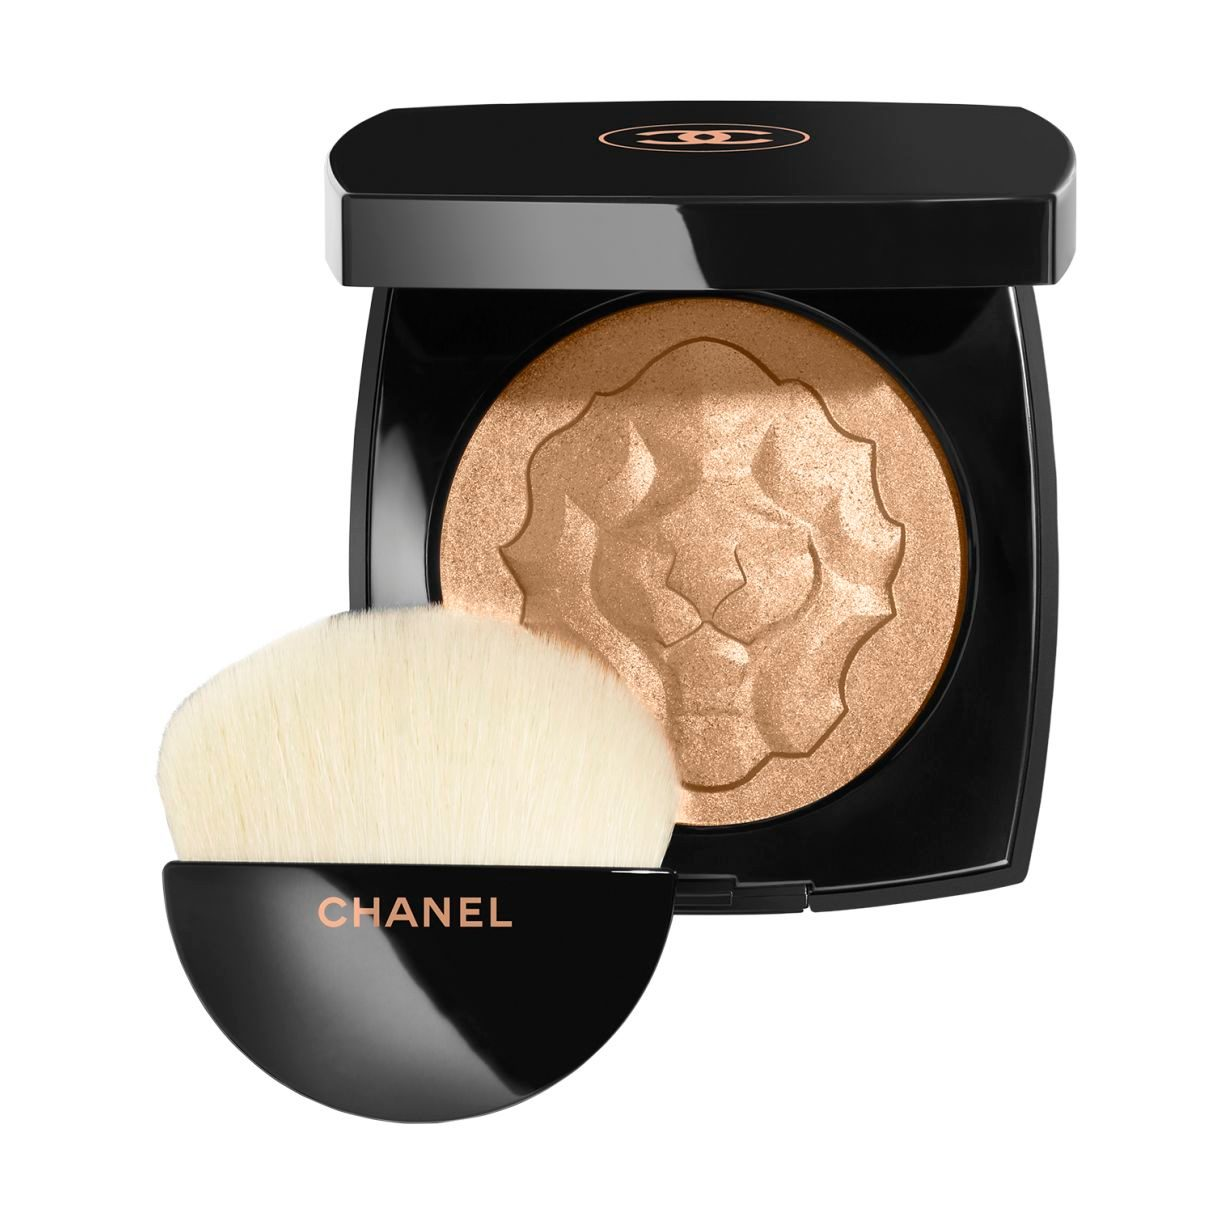 LE LION DE CHANEL EXCLUSIVE CREATION. FACE HIGHLIGHTING POWDER